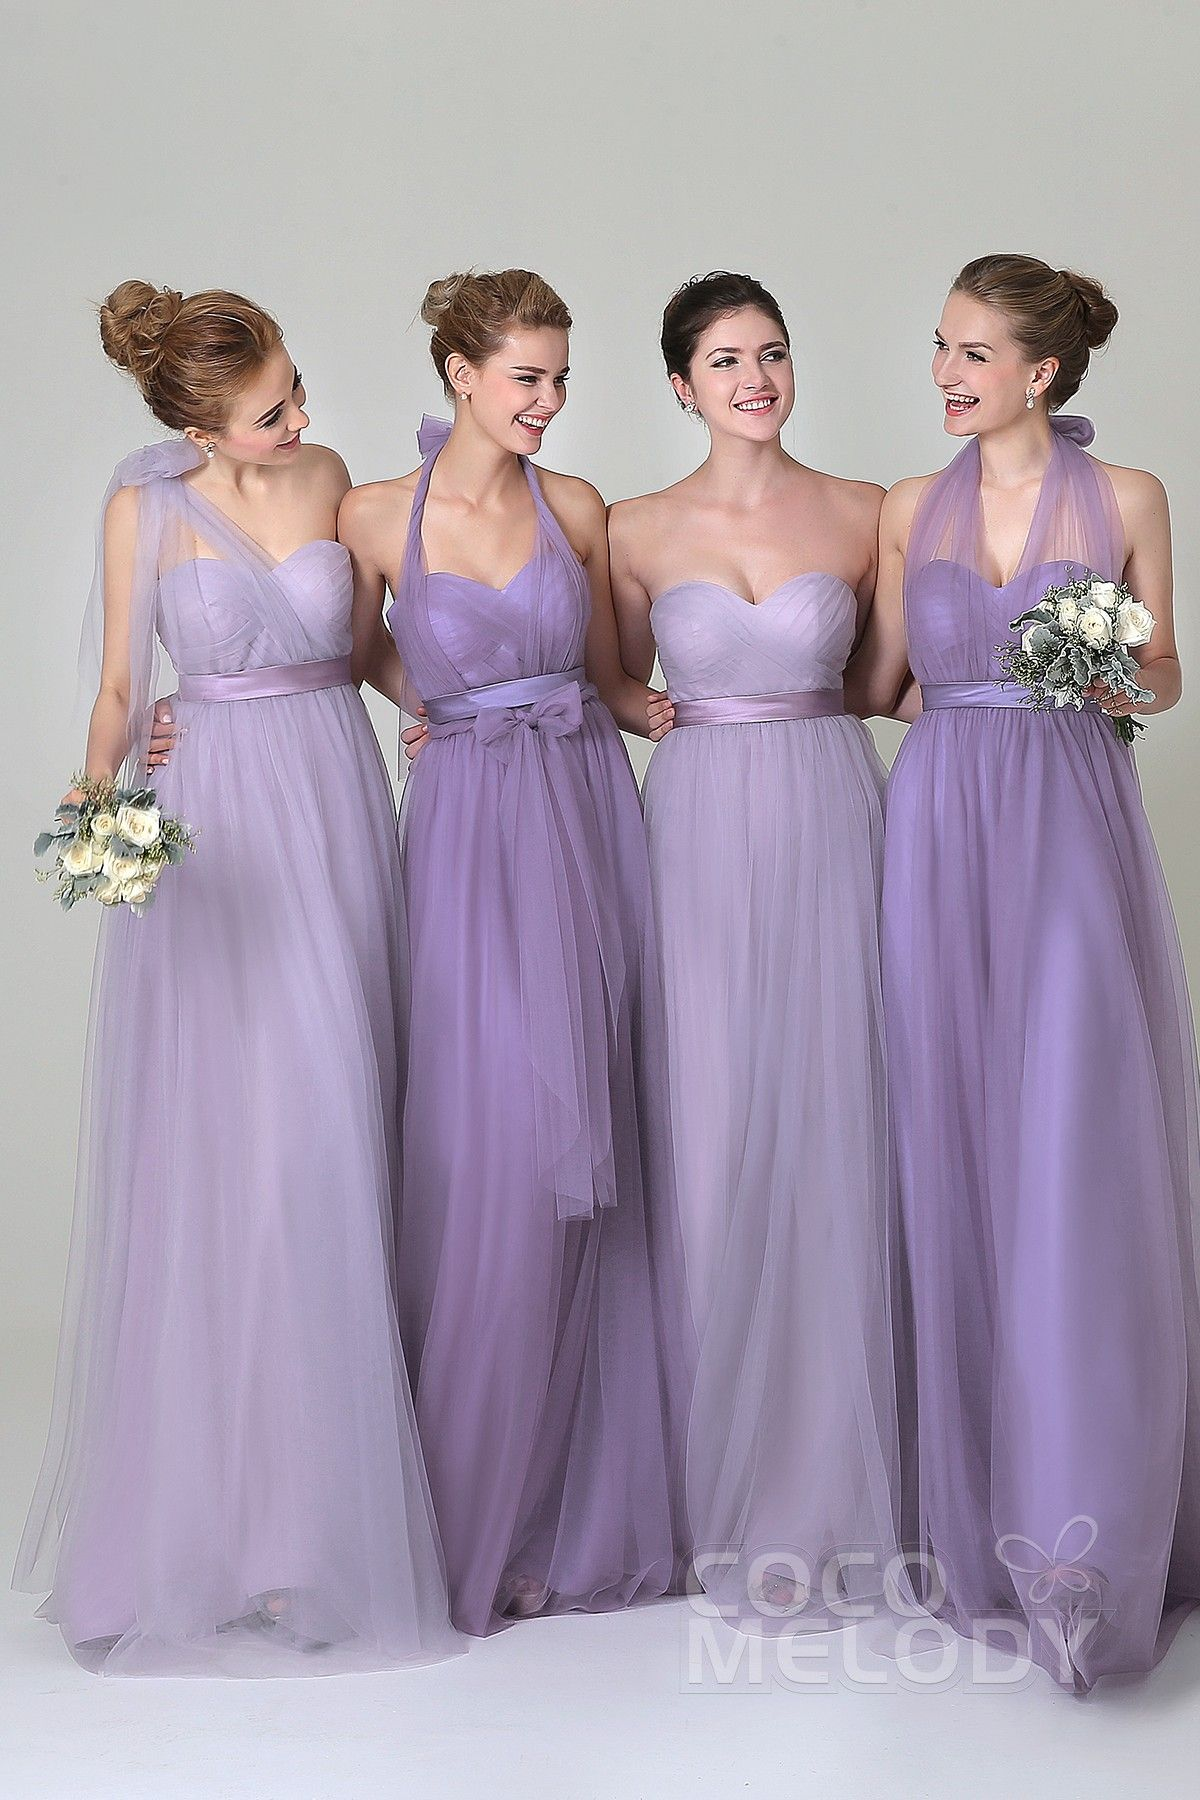 Sheath Column Floor Length Tulle Bridesmaid Dress Cozf1500b In